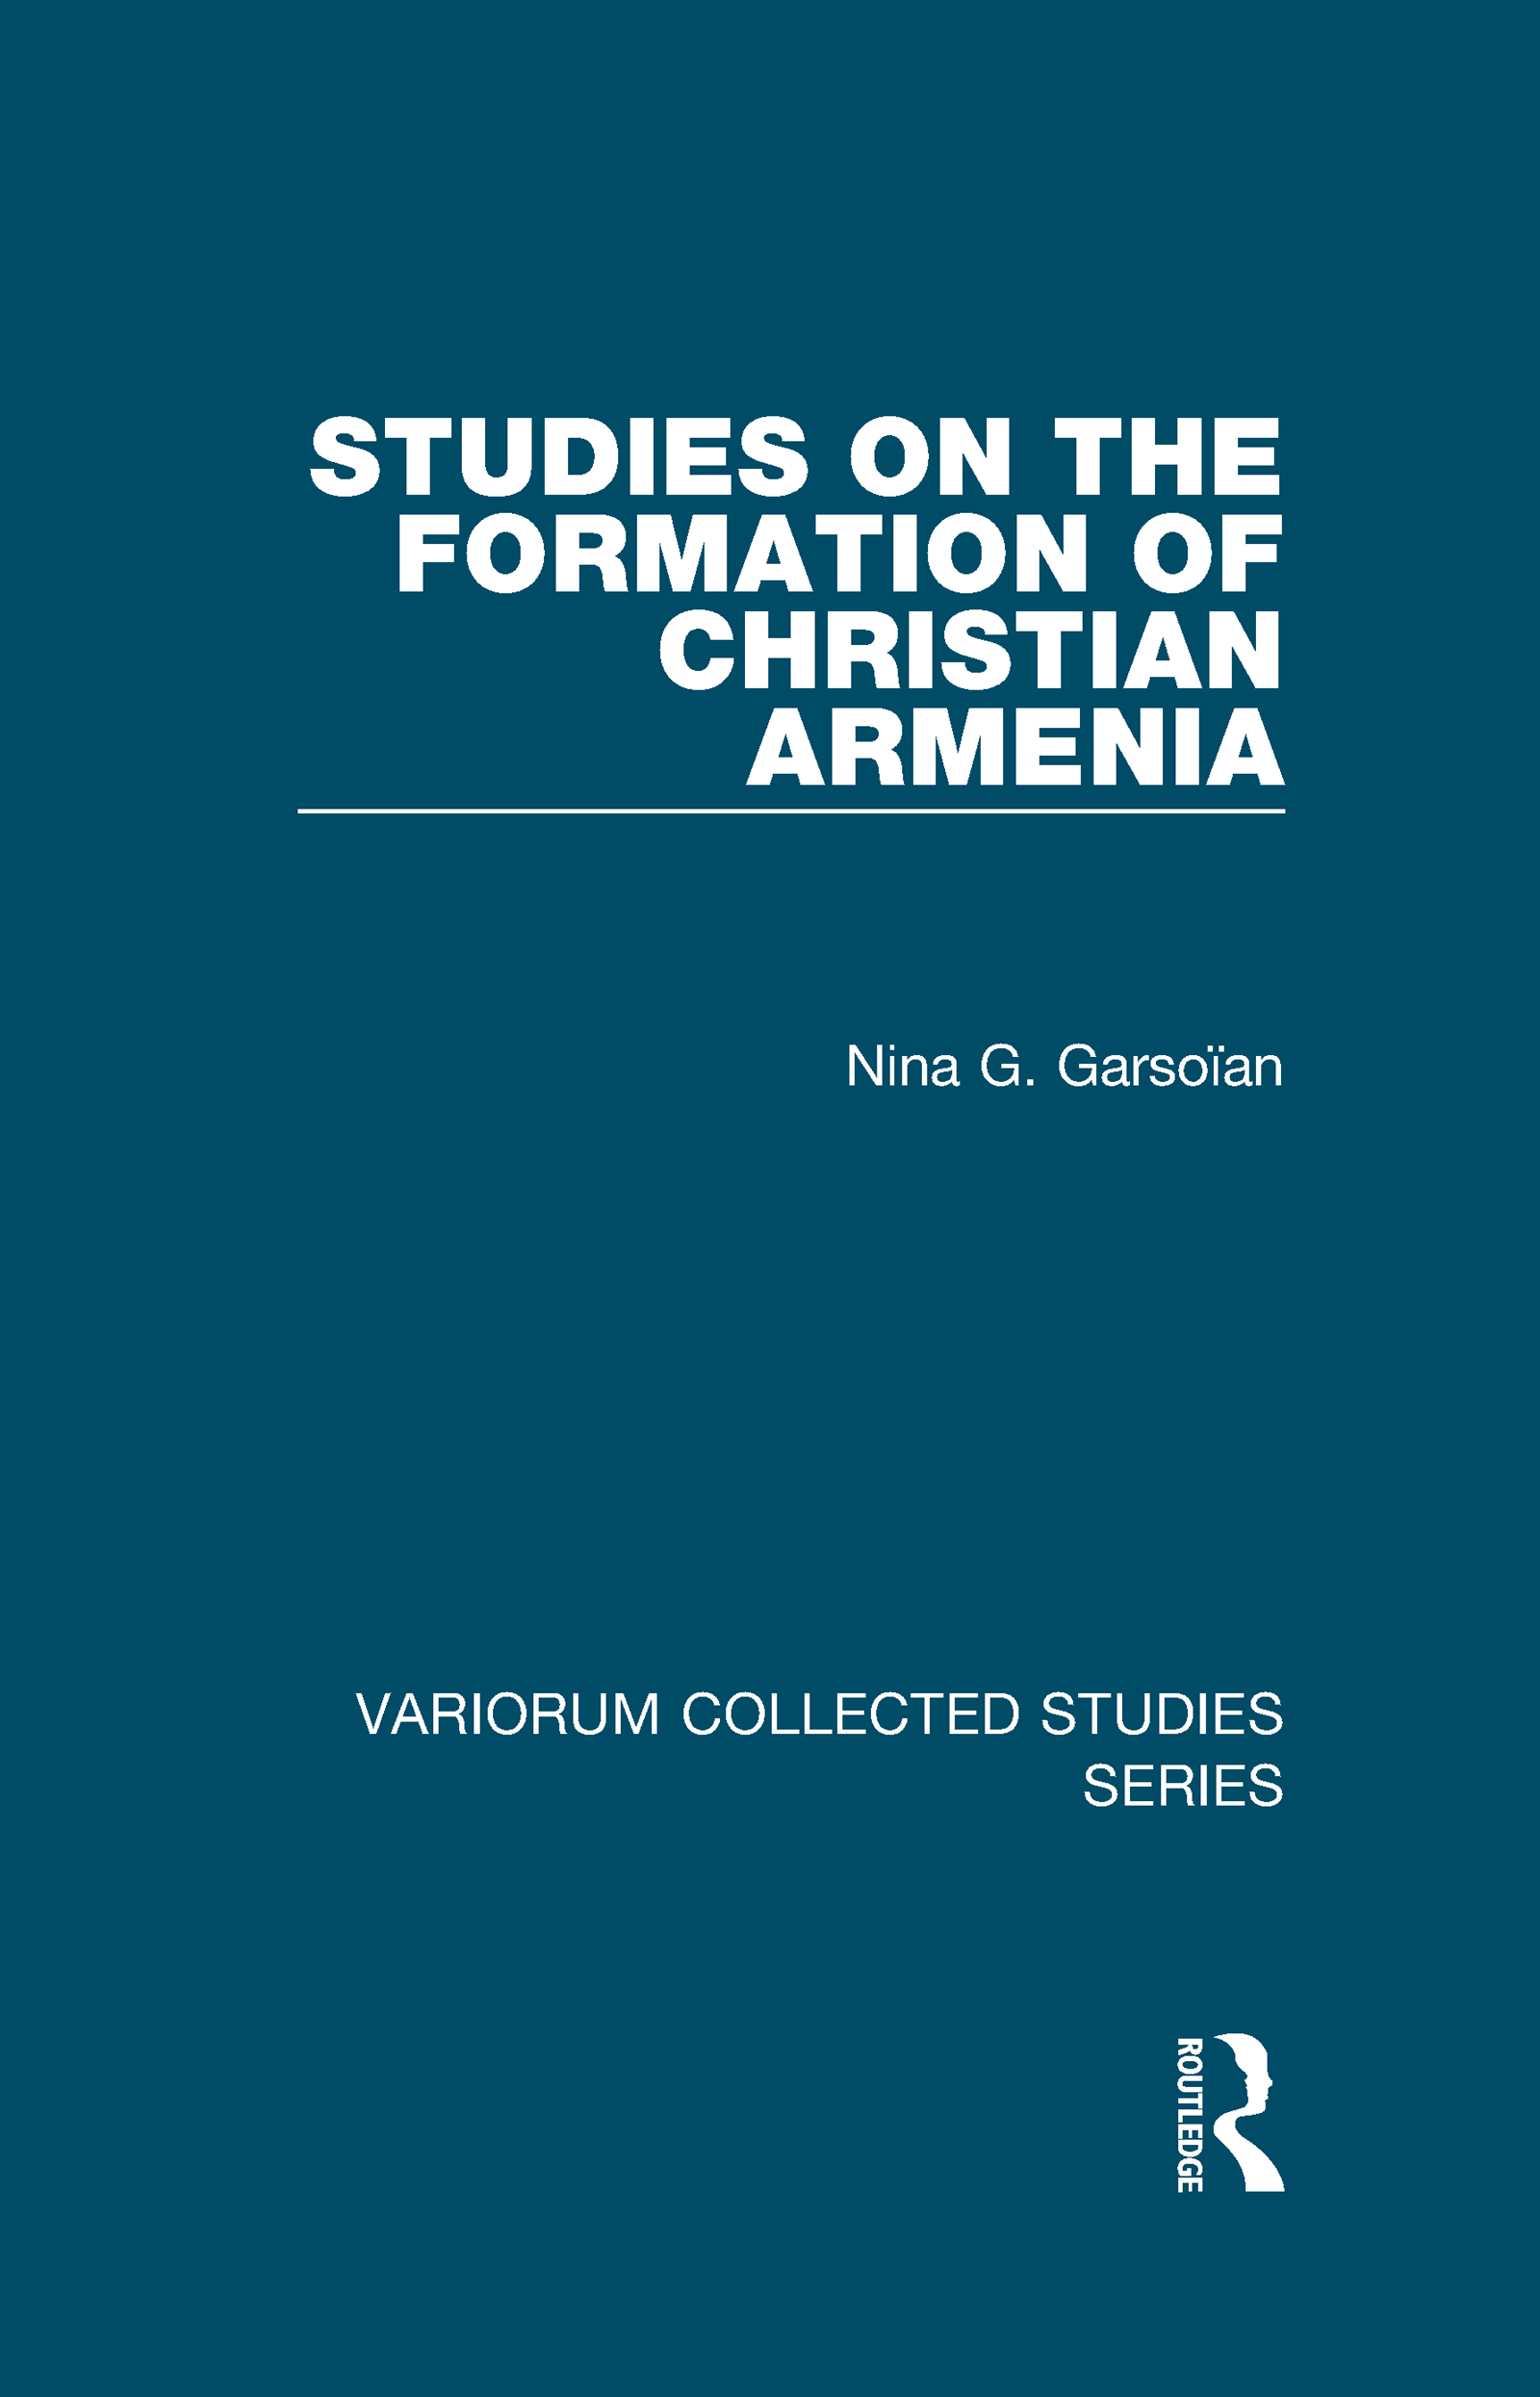 Studies on the Formation of Christian Armenia